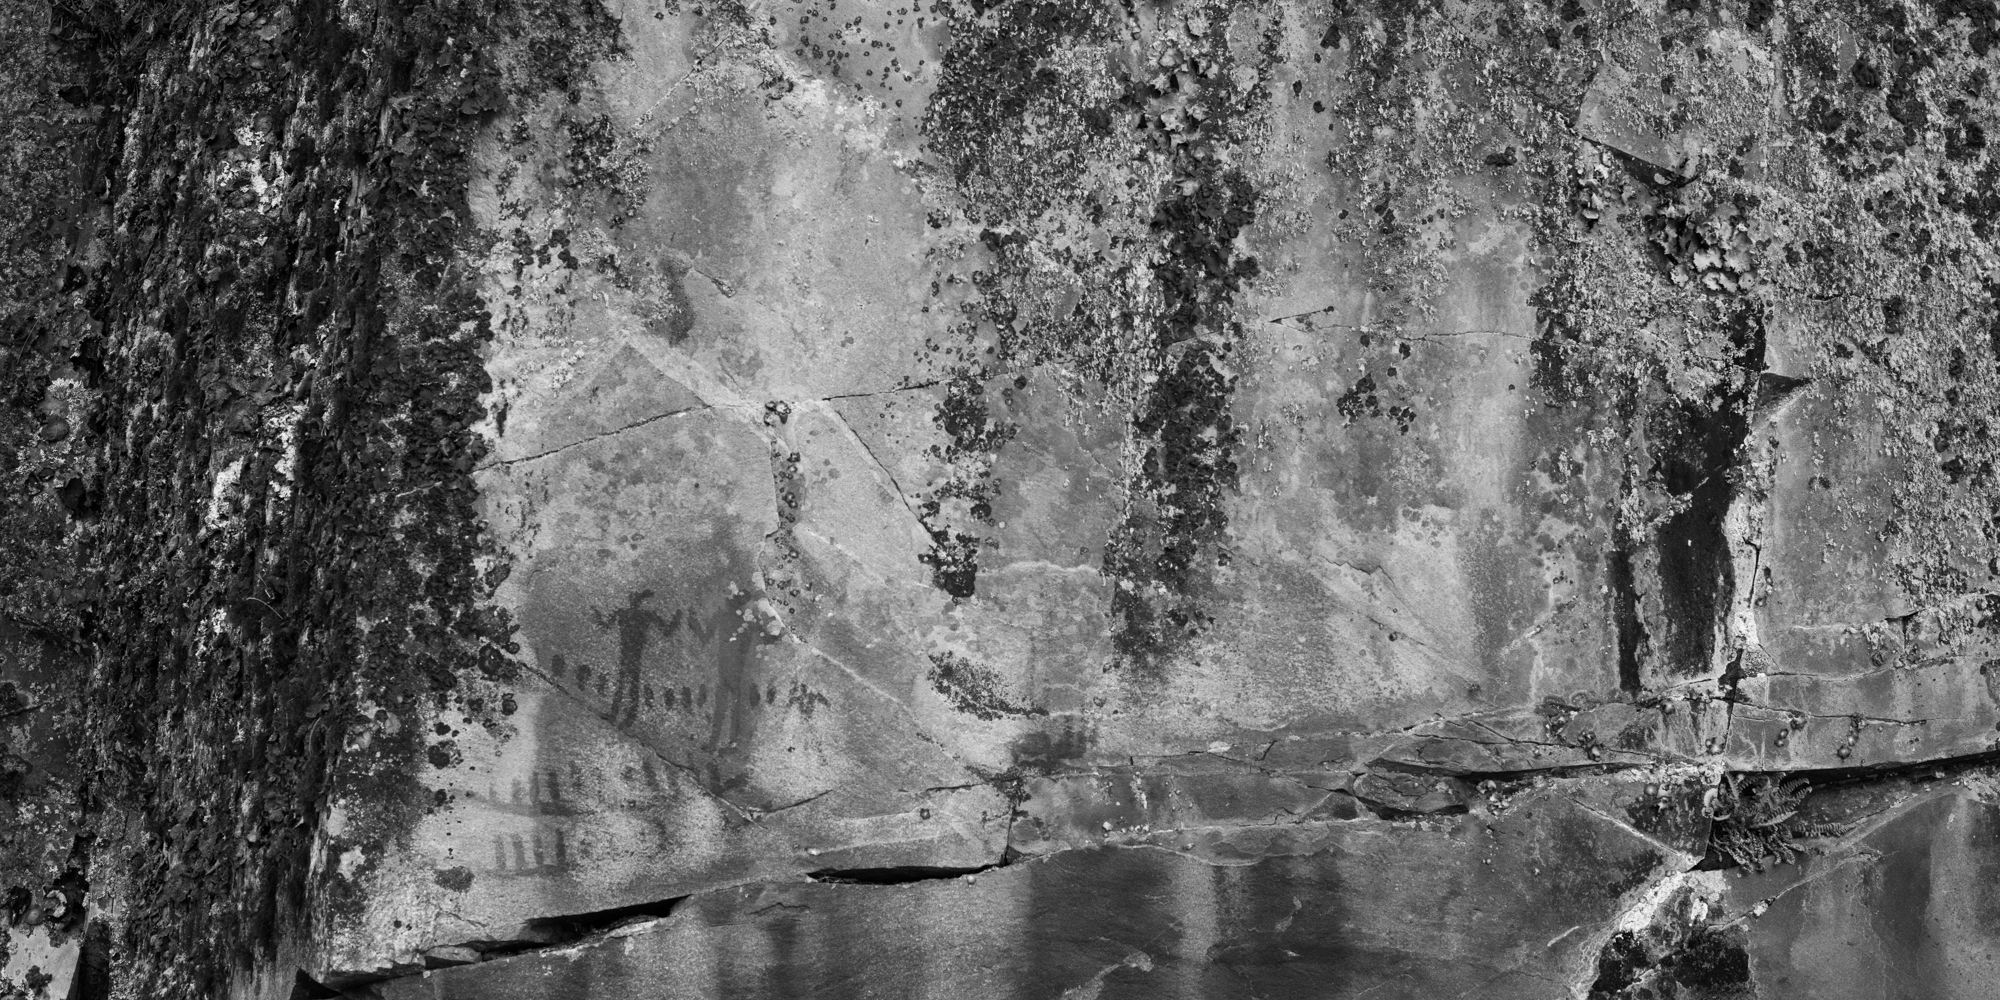 The pictographs can be seen in the lower left corner of the picture.